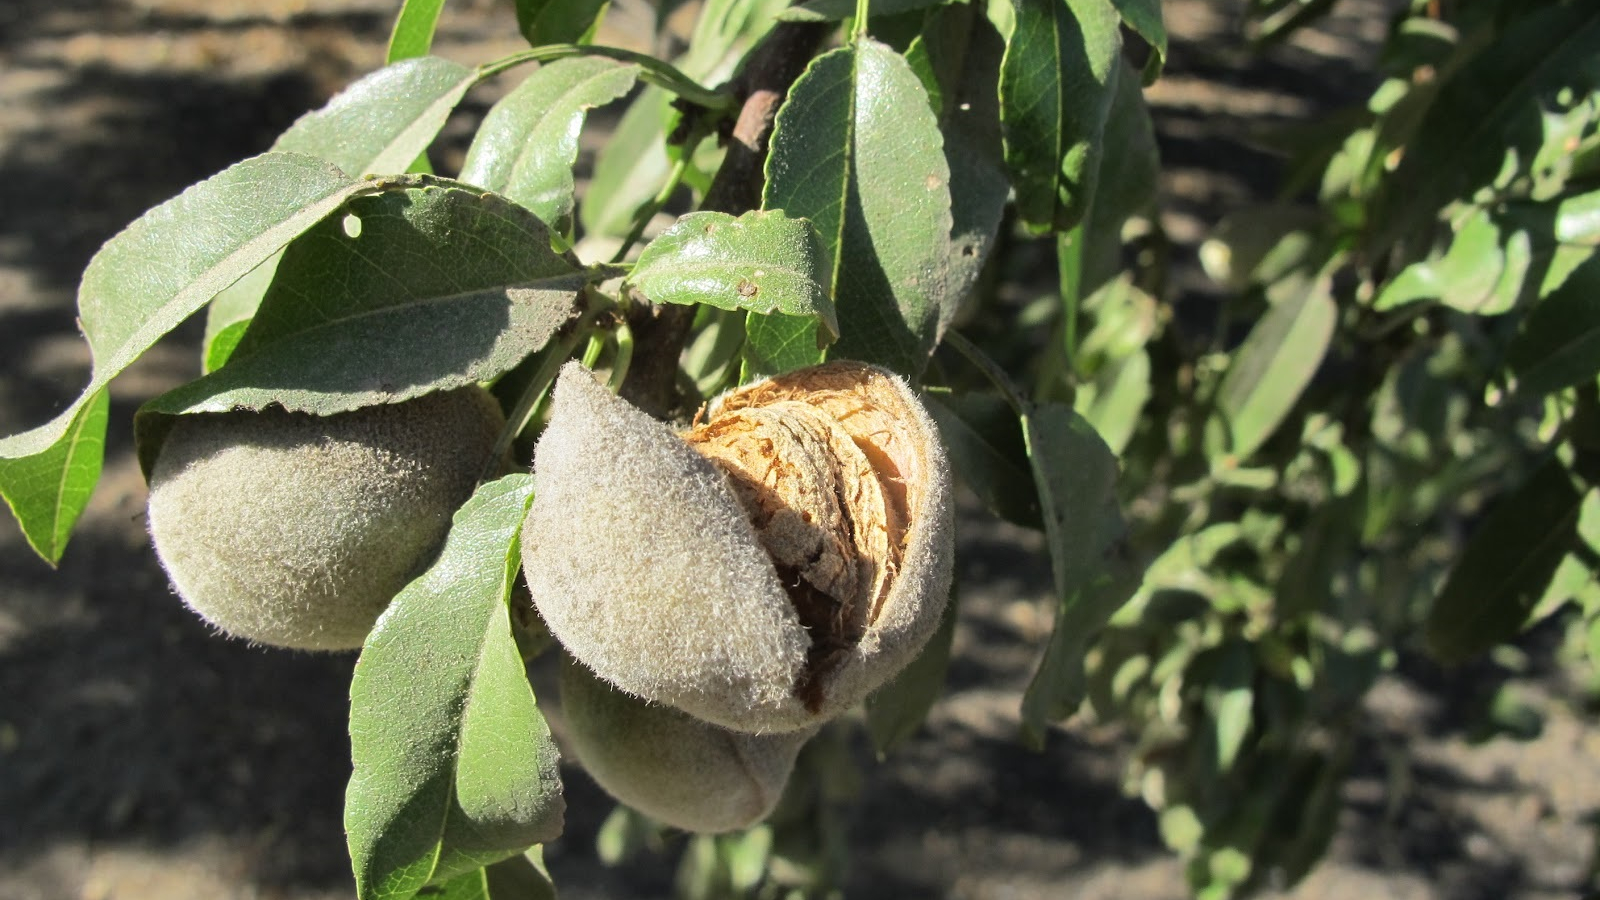 9-19 almond on tree_1558568235460.jpg.jpg